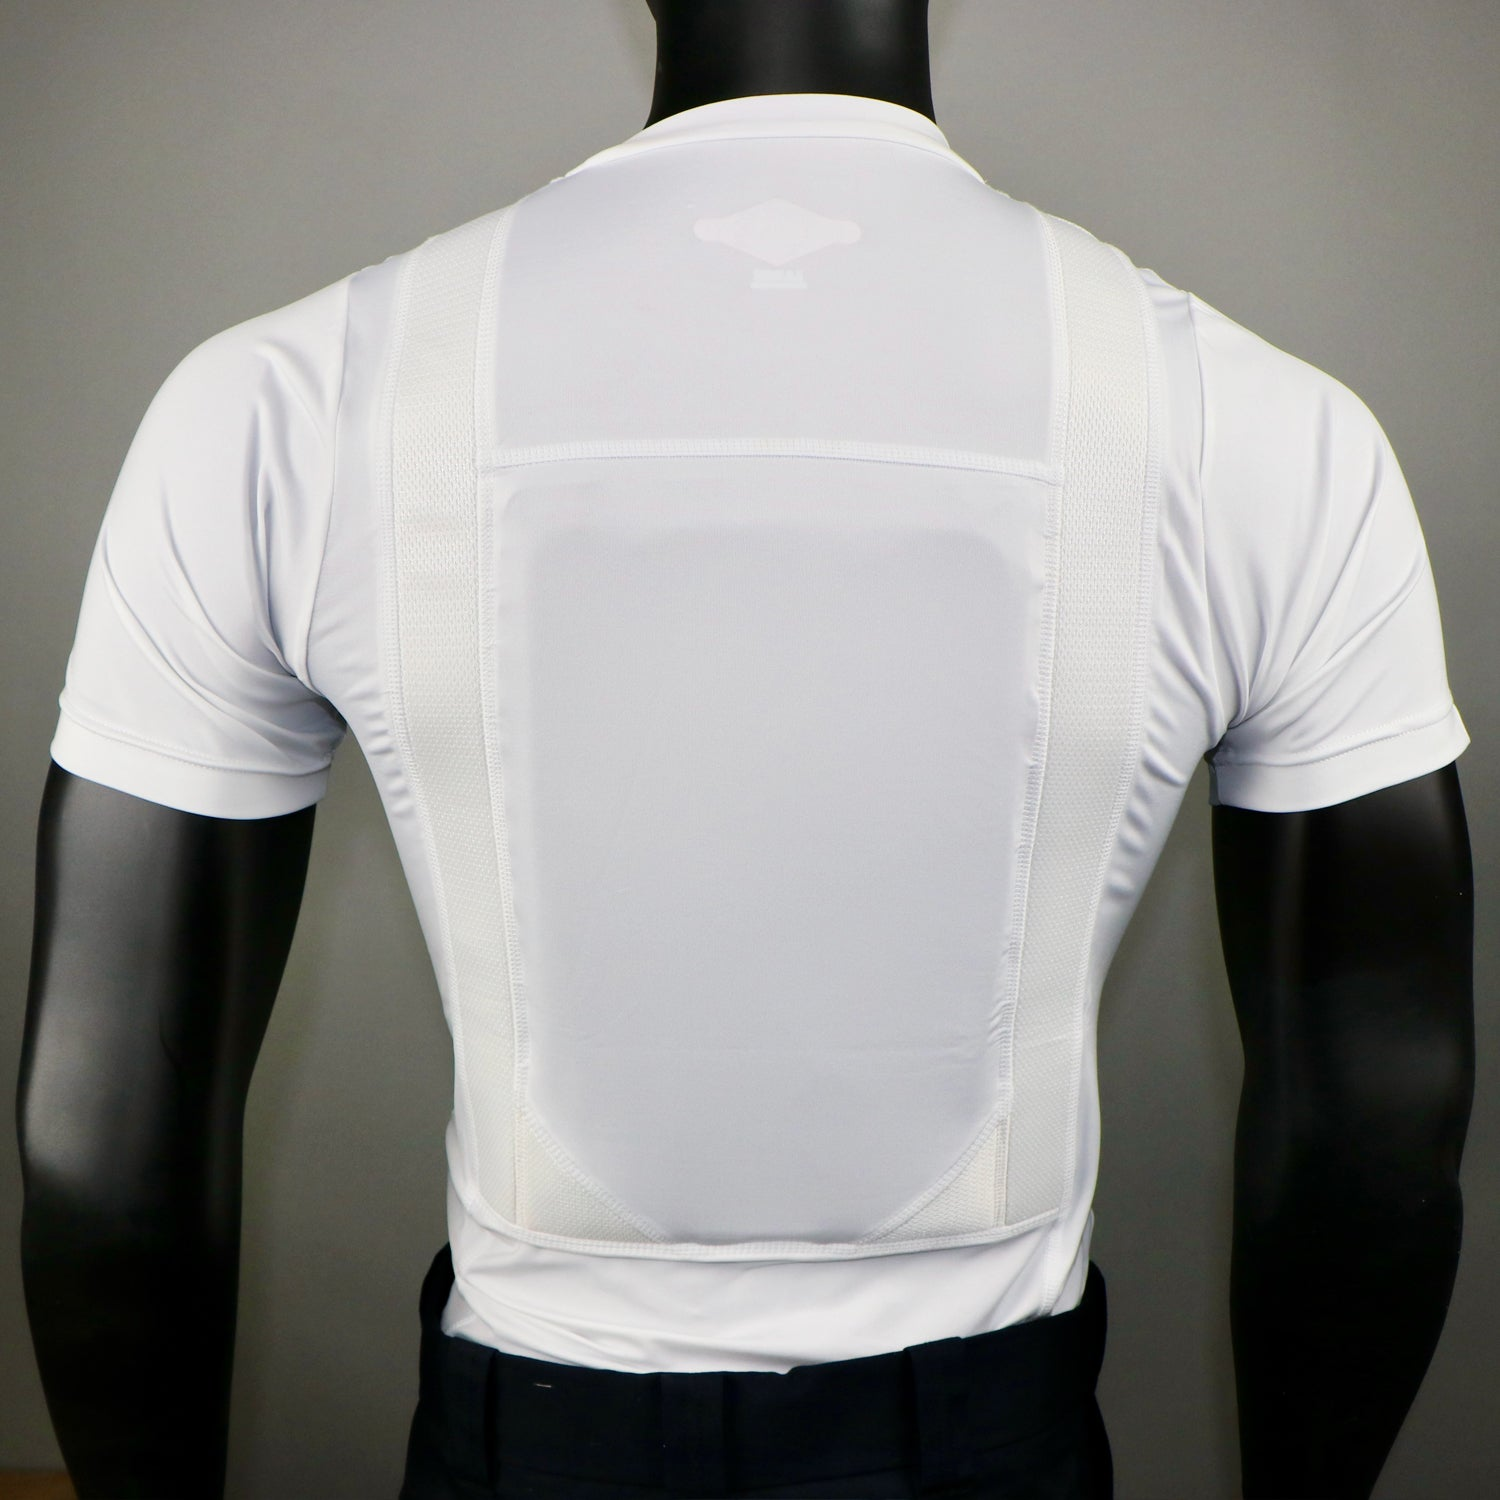 Tru-spec concealed armor shirt in white on a mannequin with a Level IIIA armor insert in the chest panel pocket.